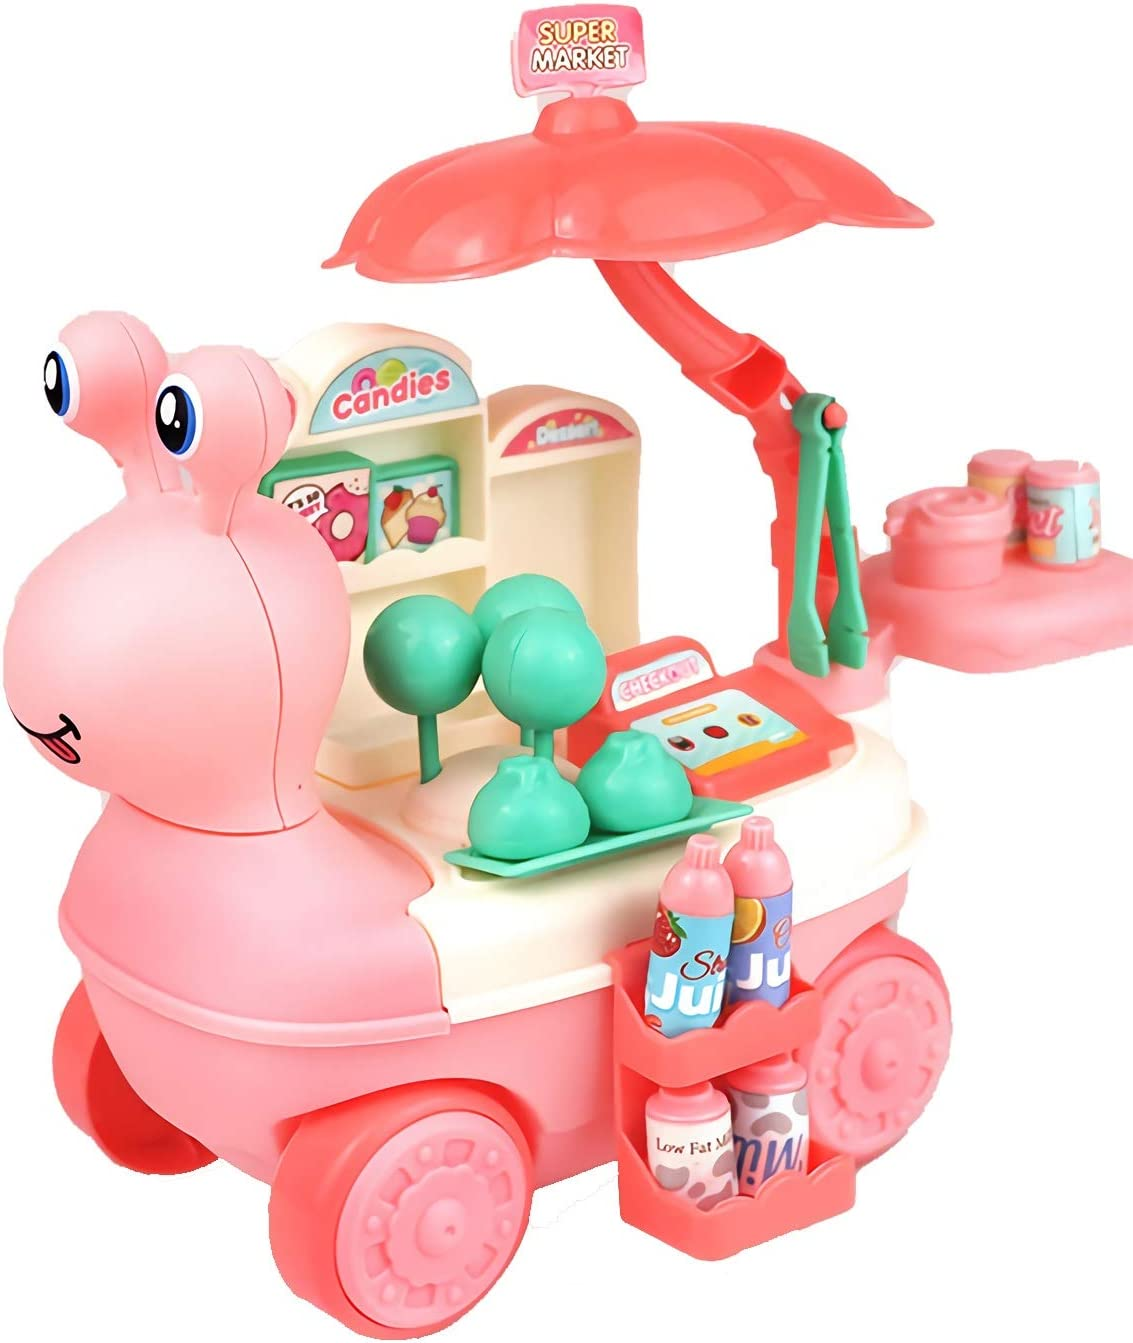 JX Mini Candy Cart, Supermarket Pretend Play Toy Learning Mini Cart Food Truck Great Gift for Girls and Boys Ages 2 - 8 Years Old (Pink)